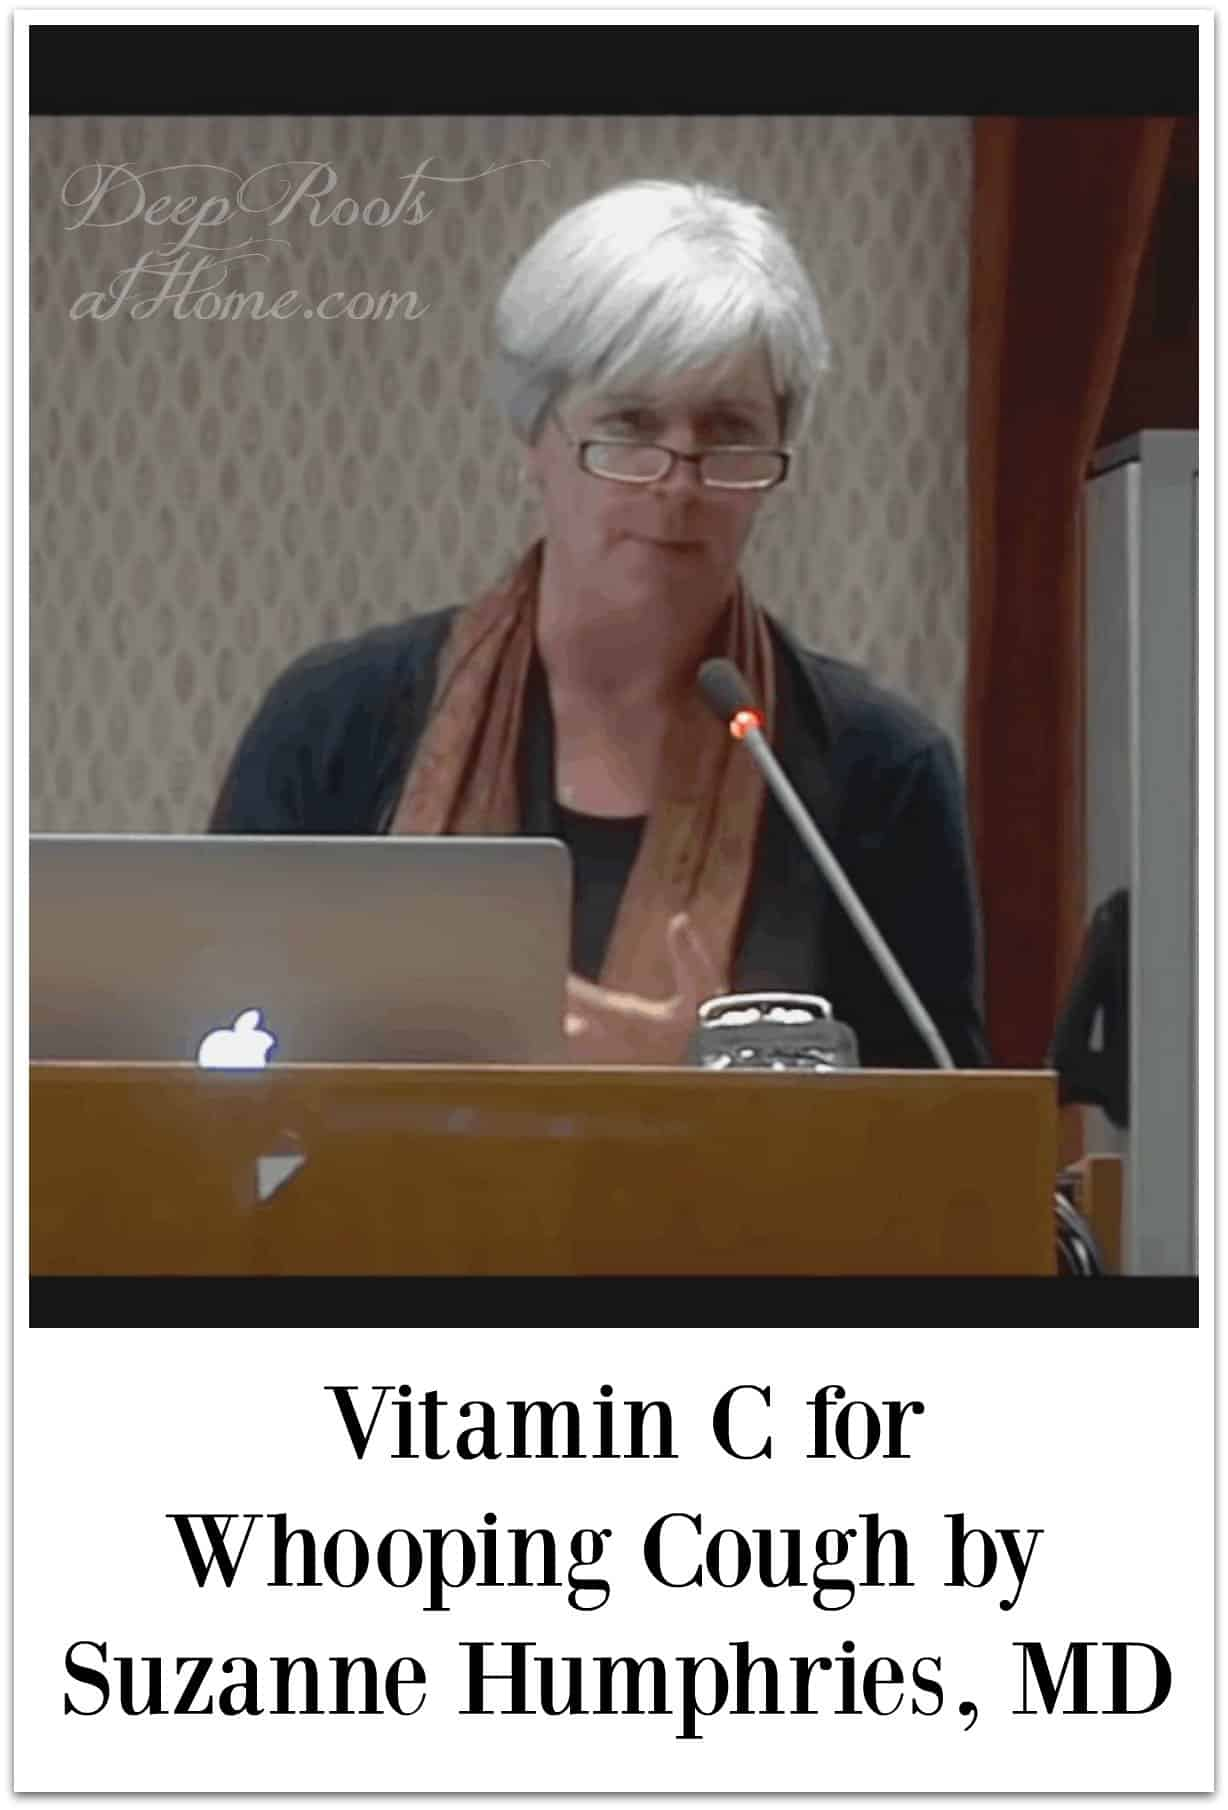 Vitamin C/Na Ascorbate for Whooping Cough by Suzanne Humphries, MD